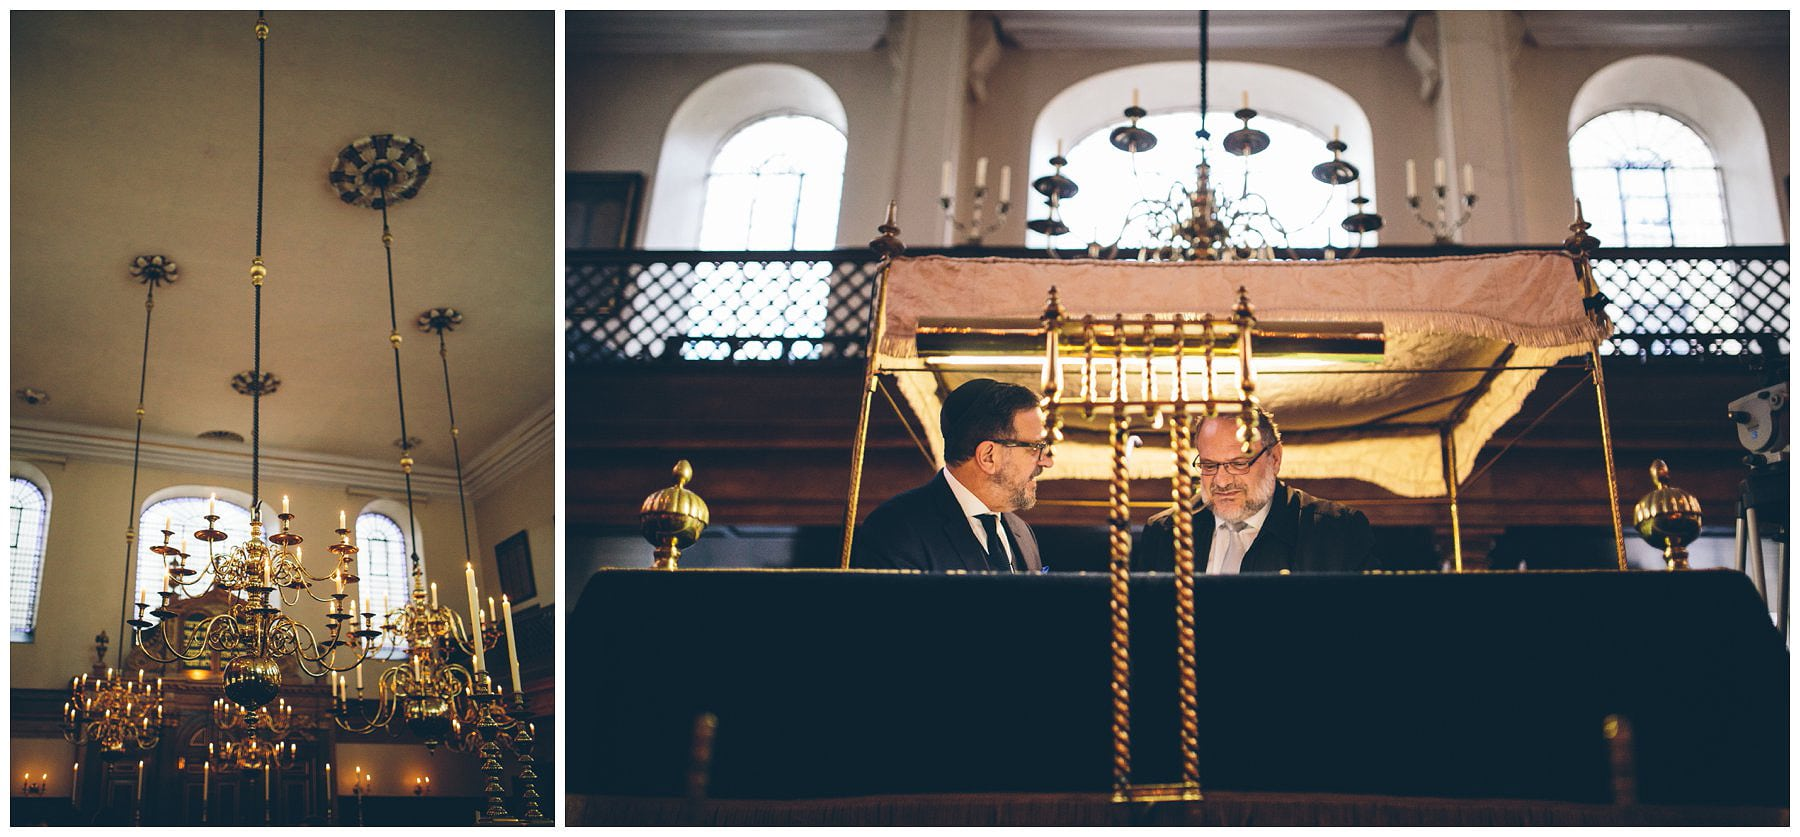 Bevis_Marks_Synagogue_Wedding_Photography_0030